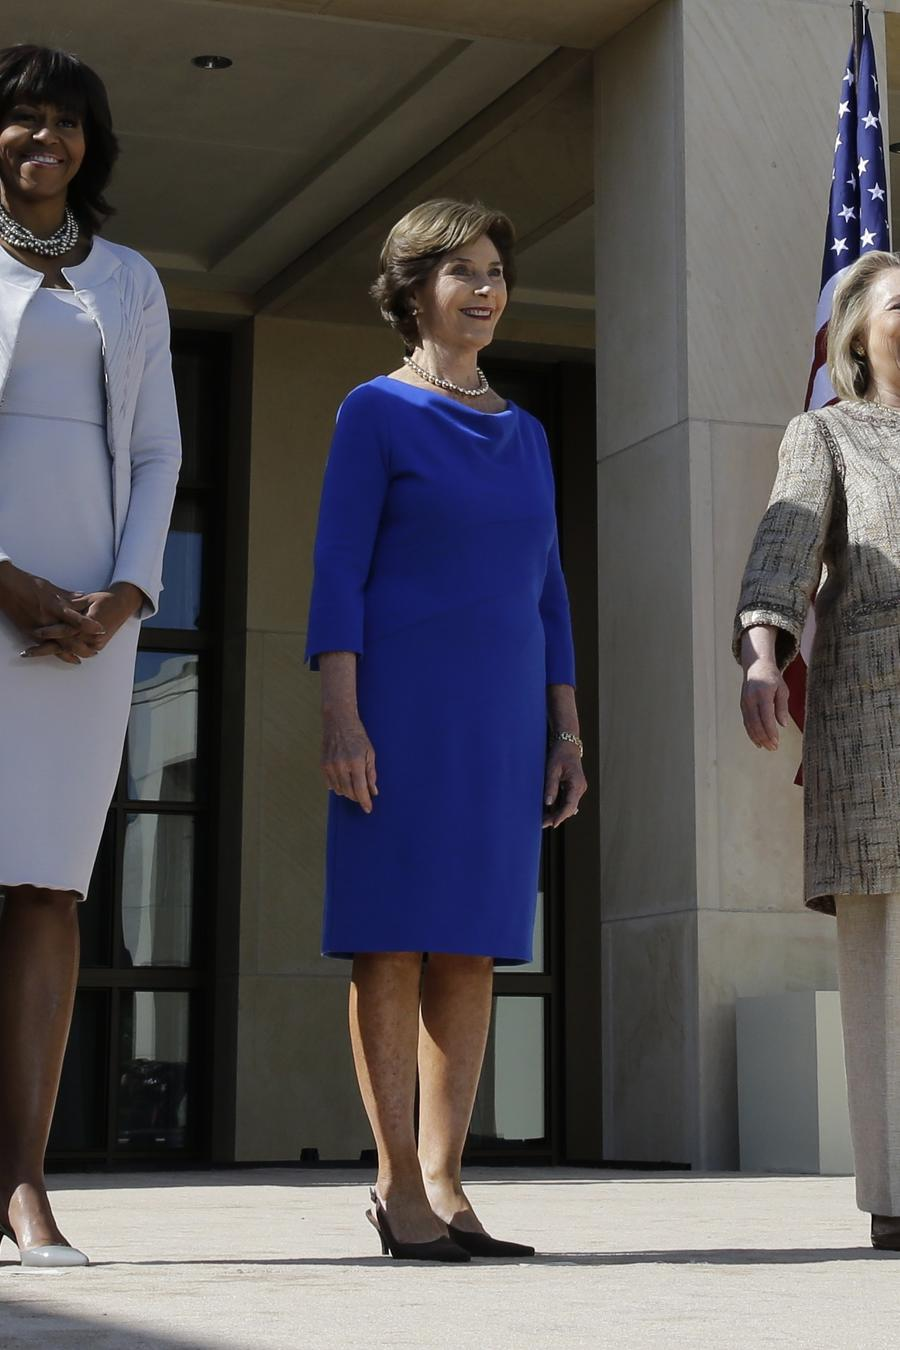 Las ex primeras damas Michelle Obama, Laura Bush y Hillary Clinton  durante un evento en el George W. Bush Presidential Center, en Dallas, en abril de 2013.